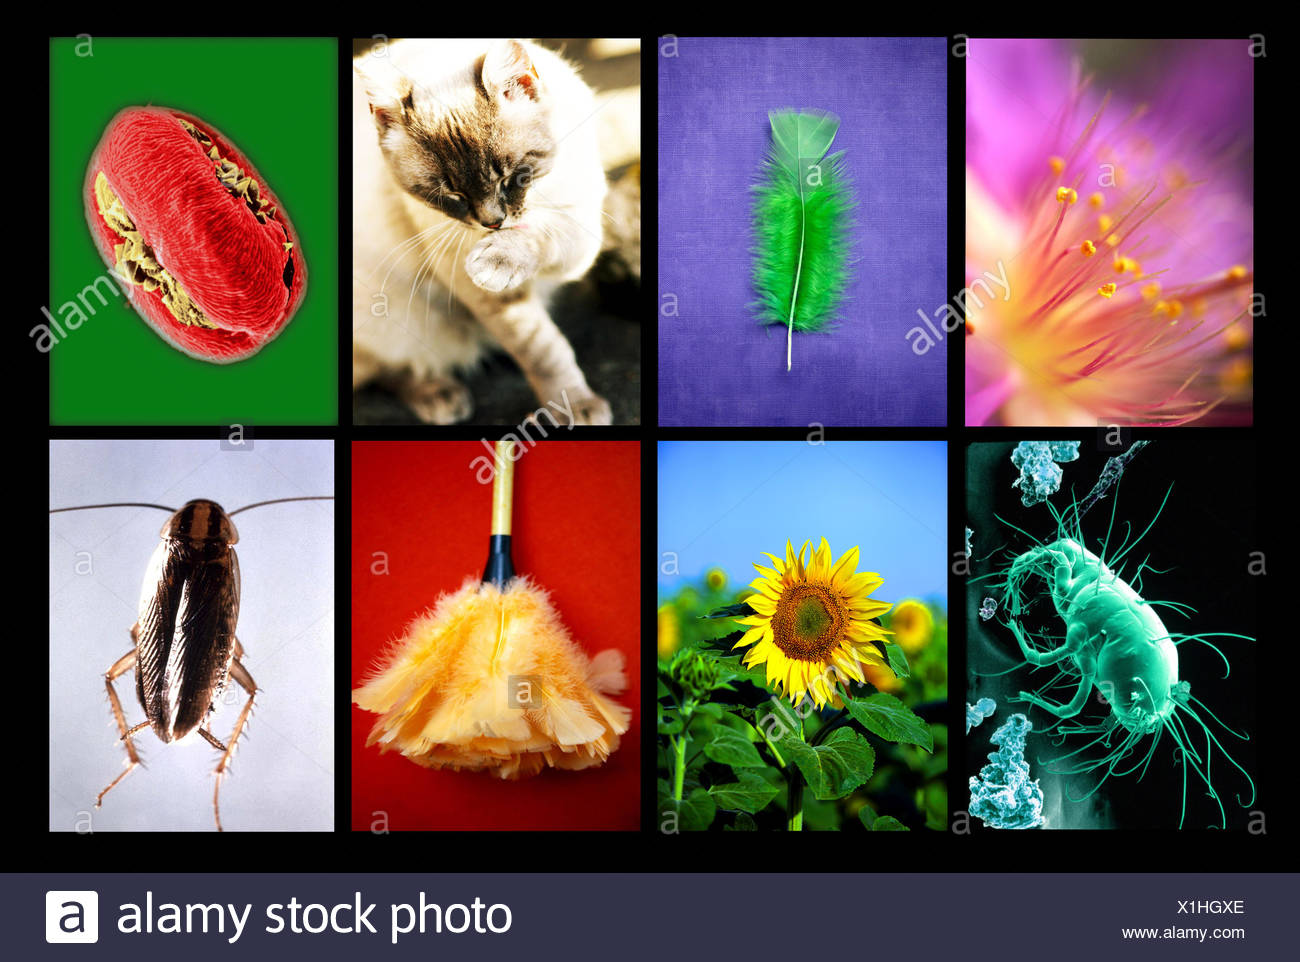 Allergens responsible for respiratory allergies. - Stock Image